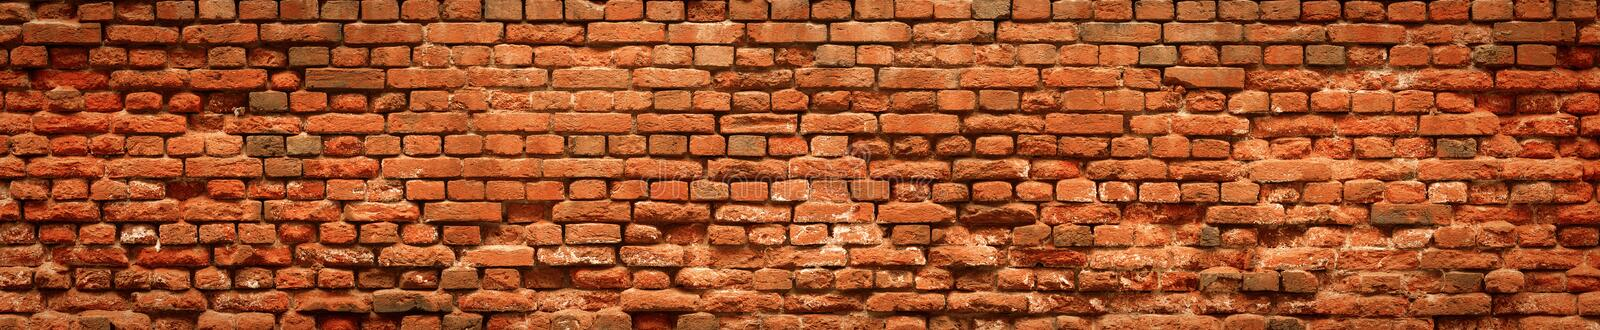 Red Old Brick wall panoramic background in high resolution stock image